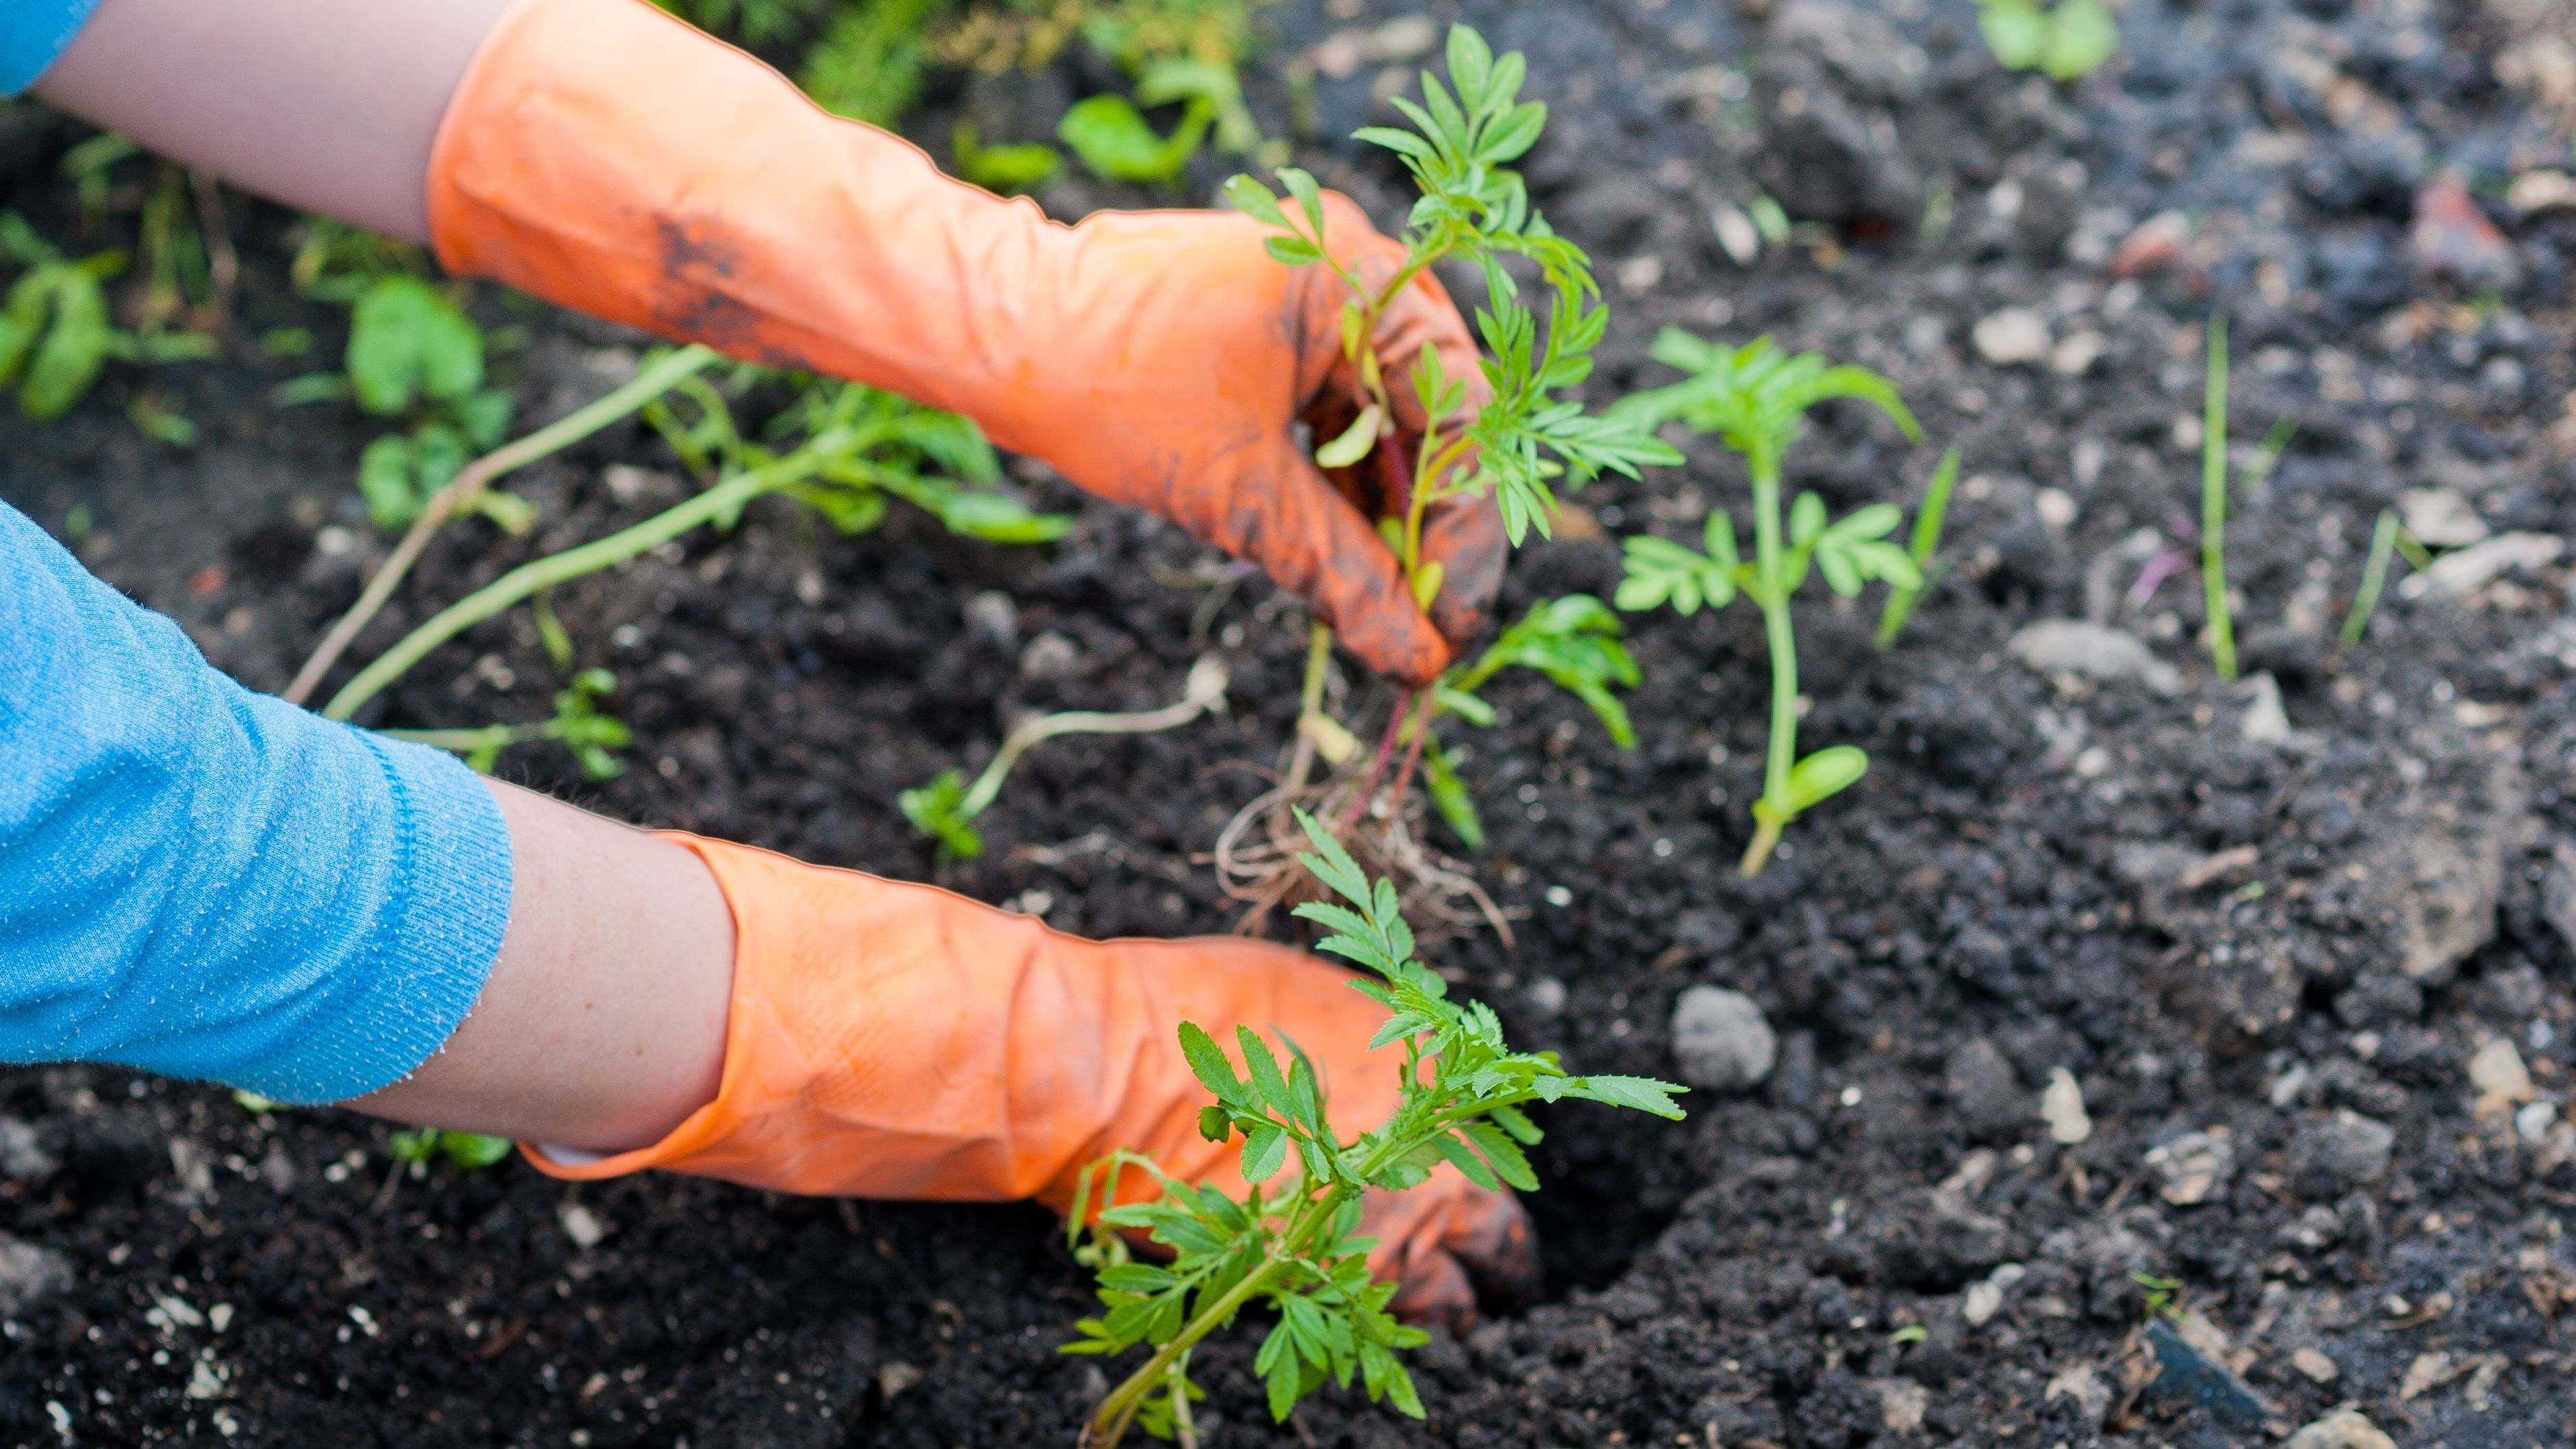 How to transplant your vegetable plants?